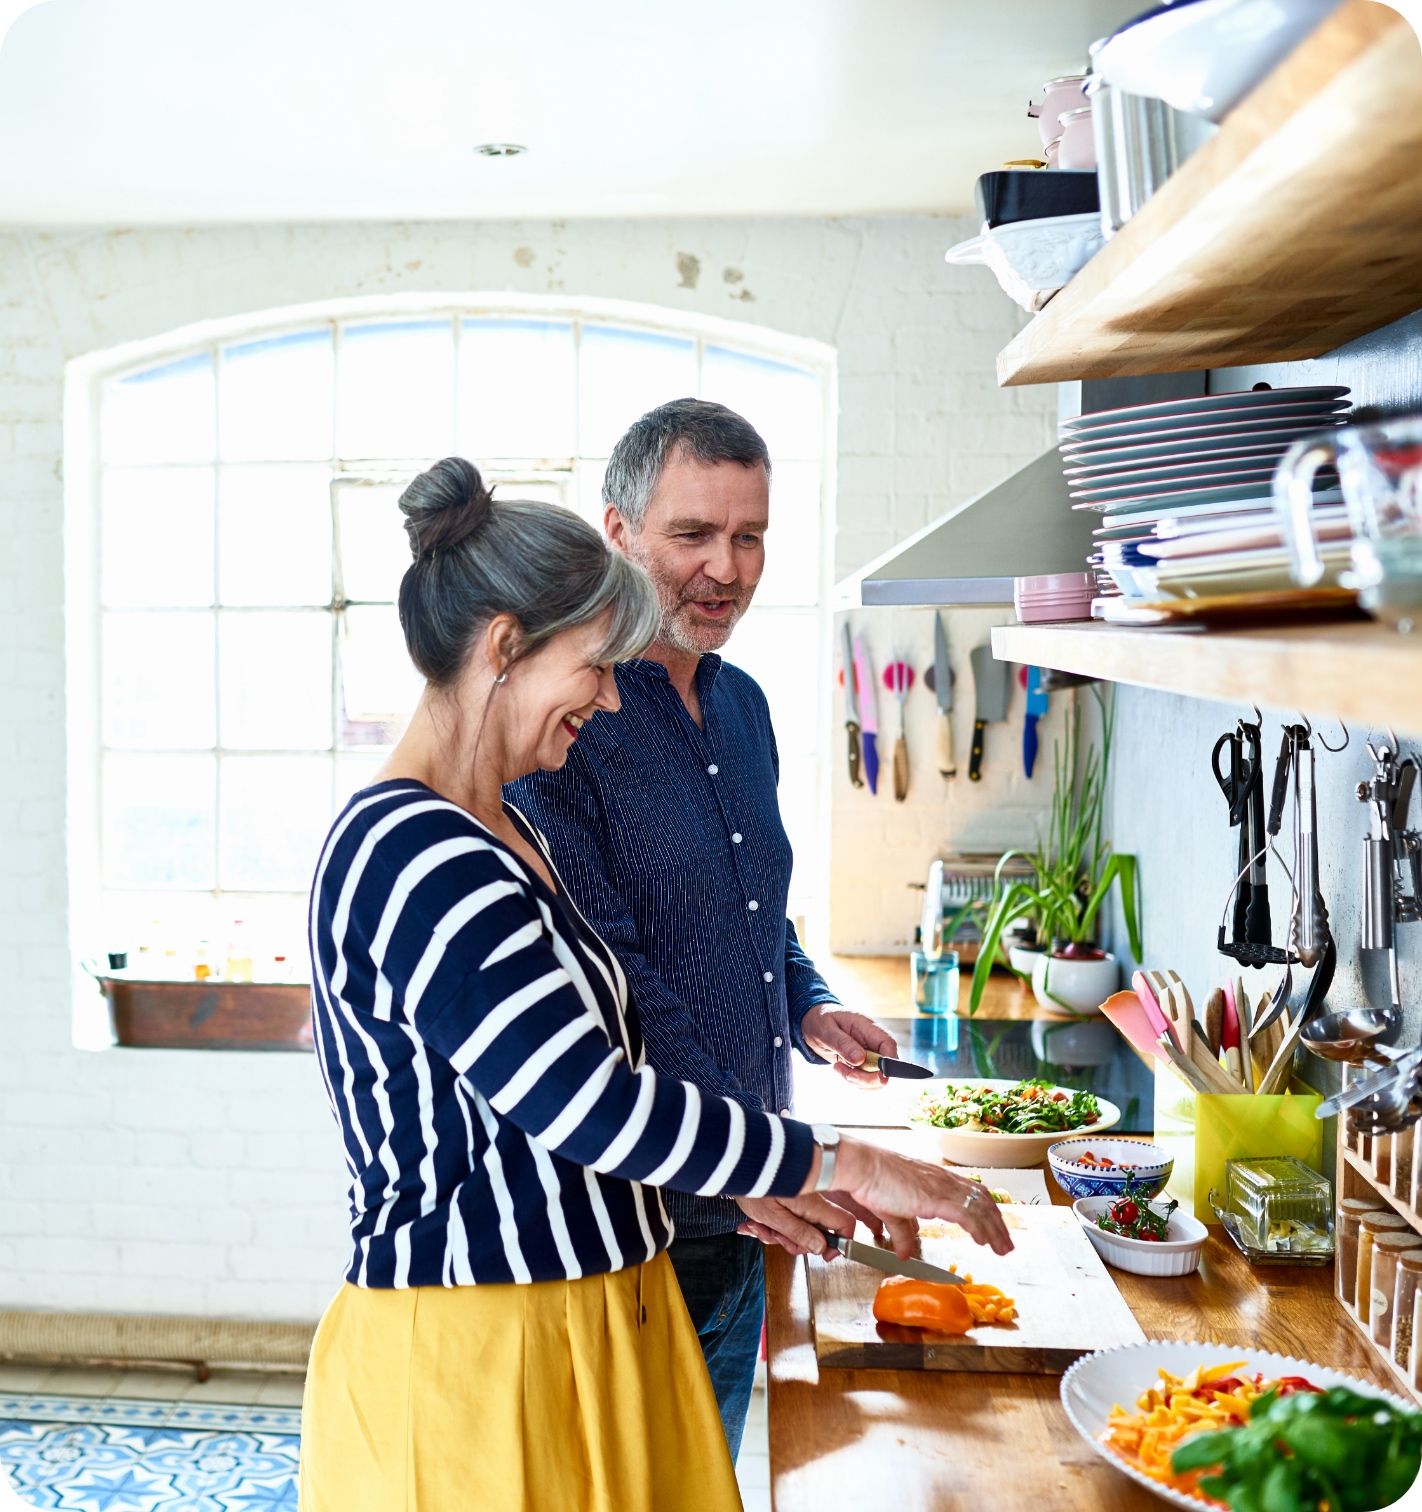 couple cooking in a brightly lit kitchen